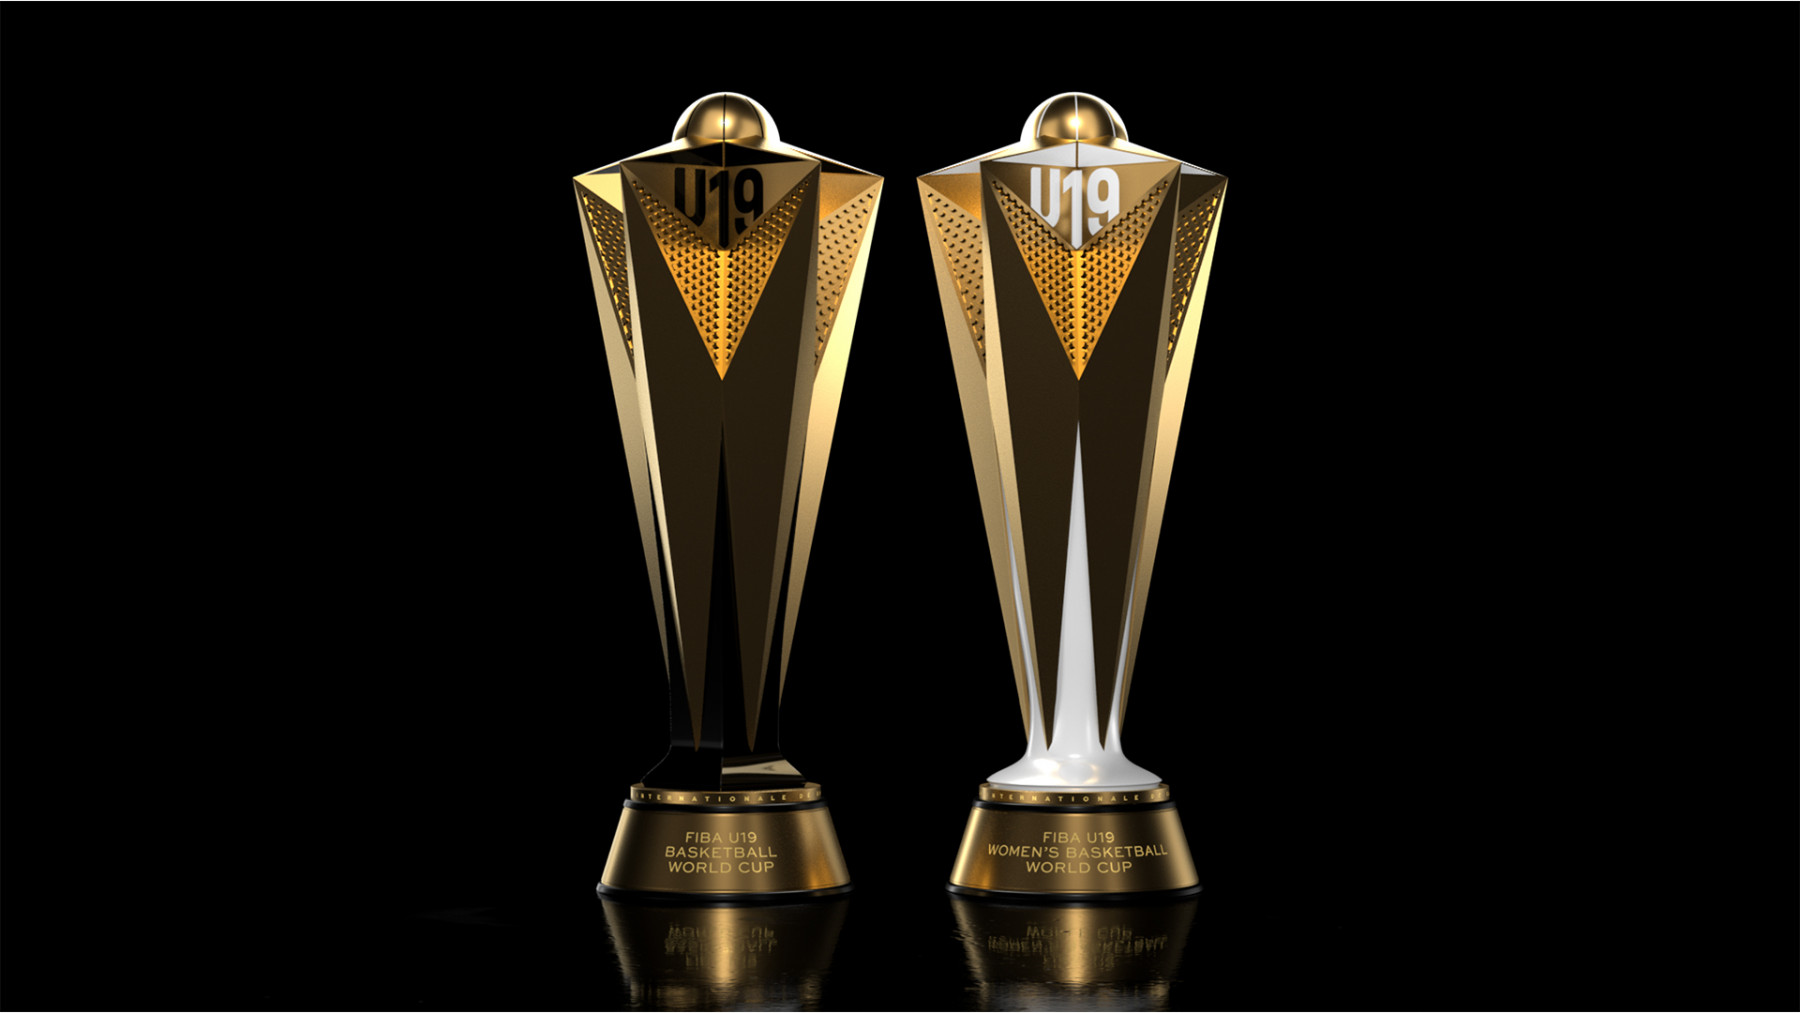 Works designs International Basketball trophies | Prolific North